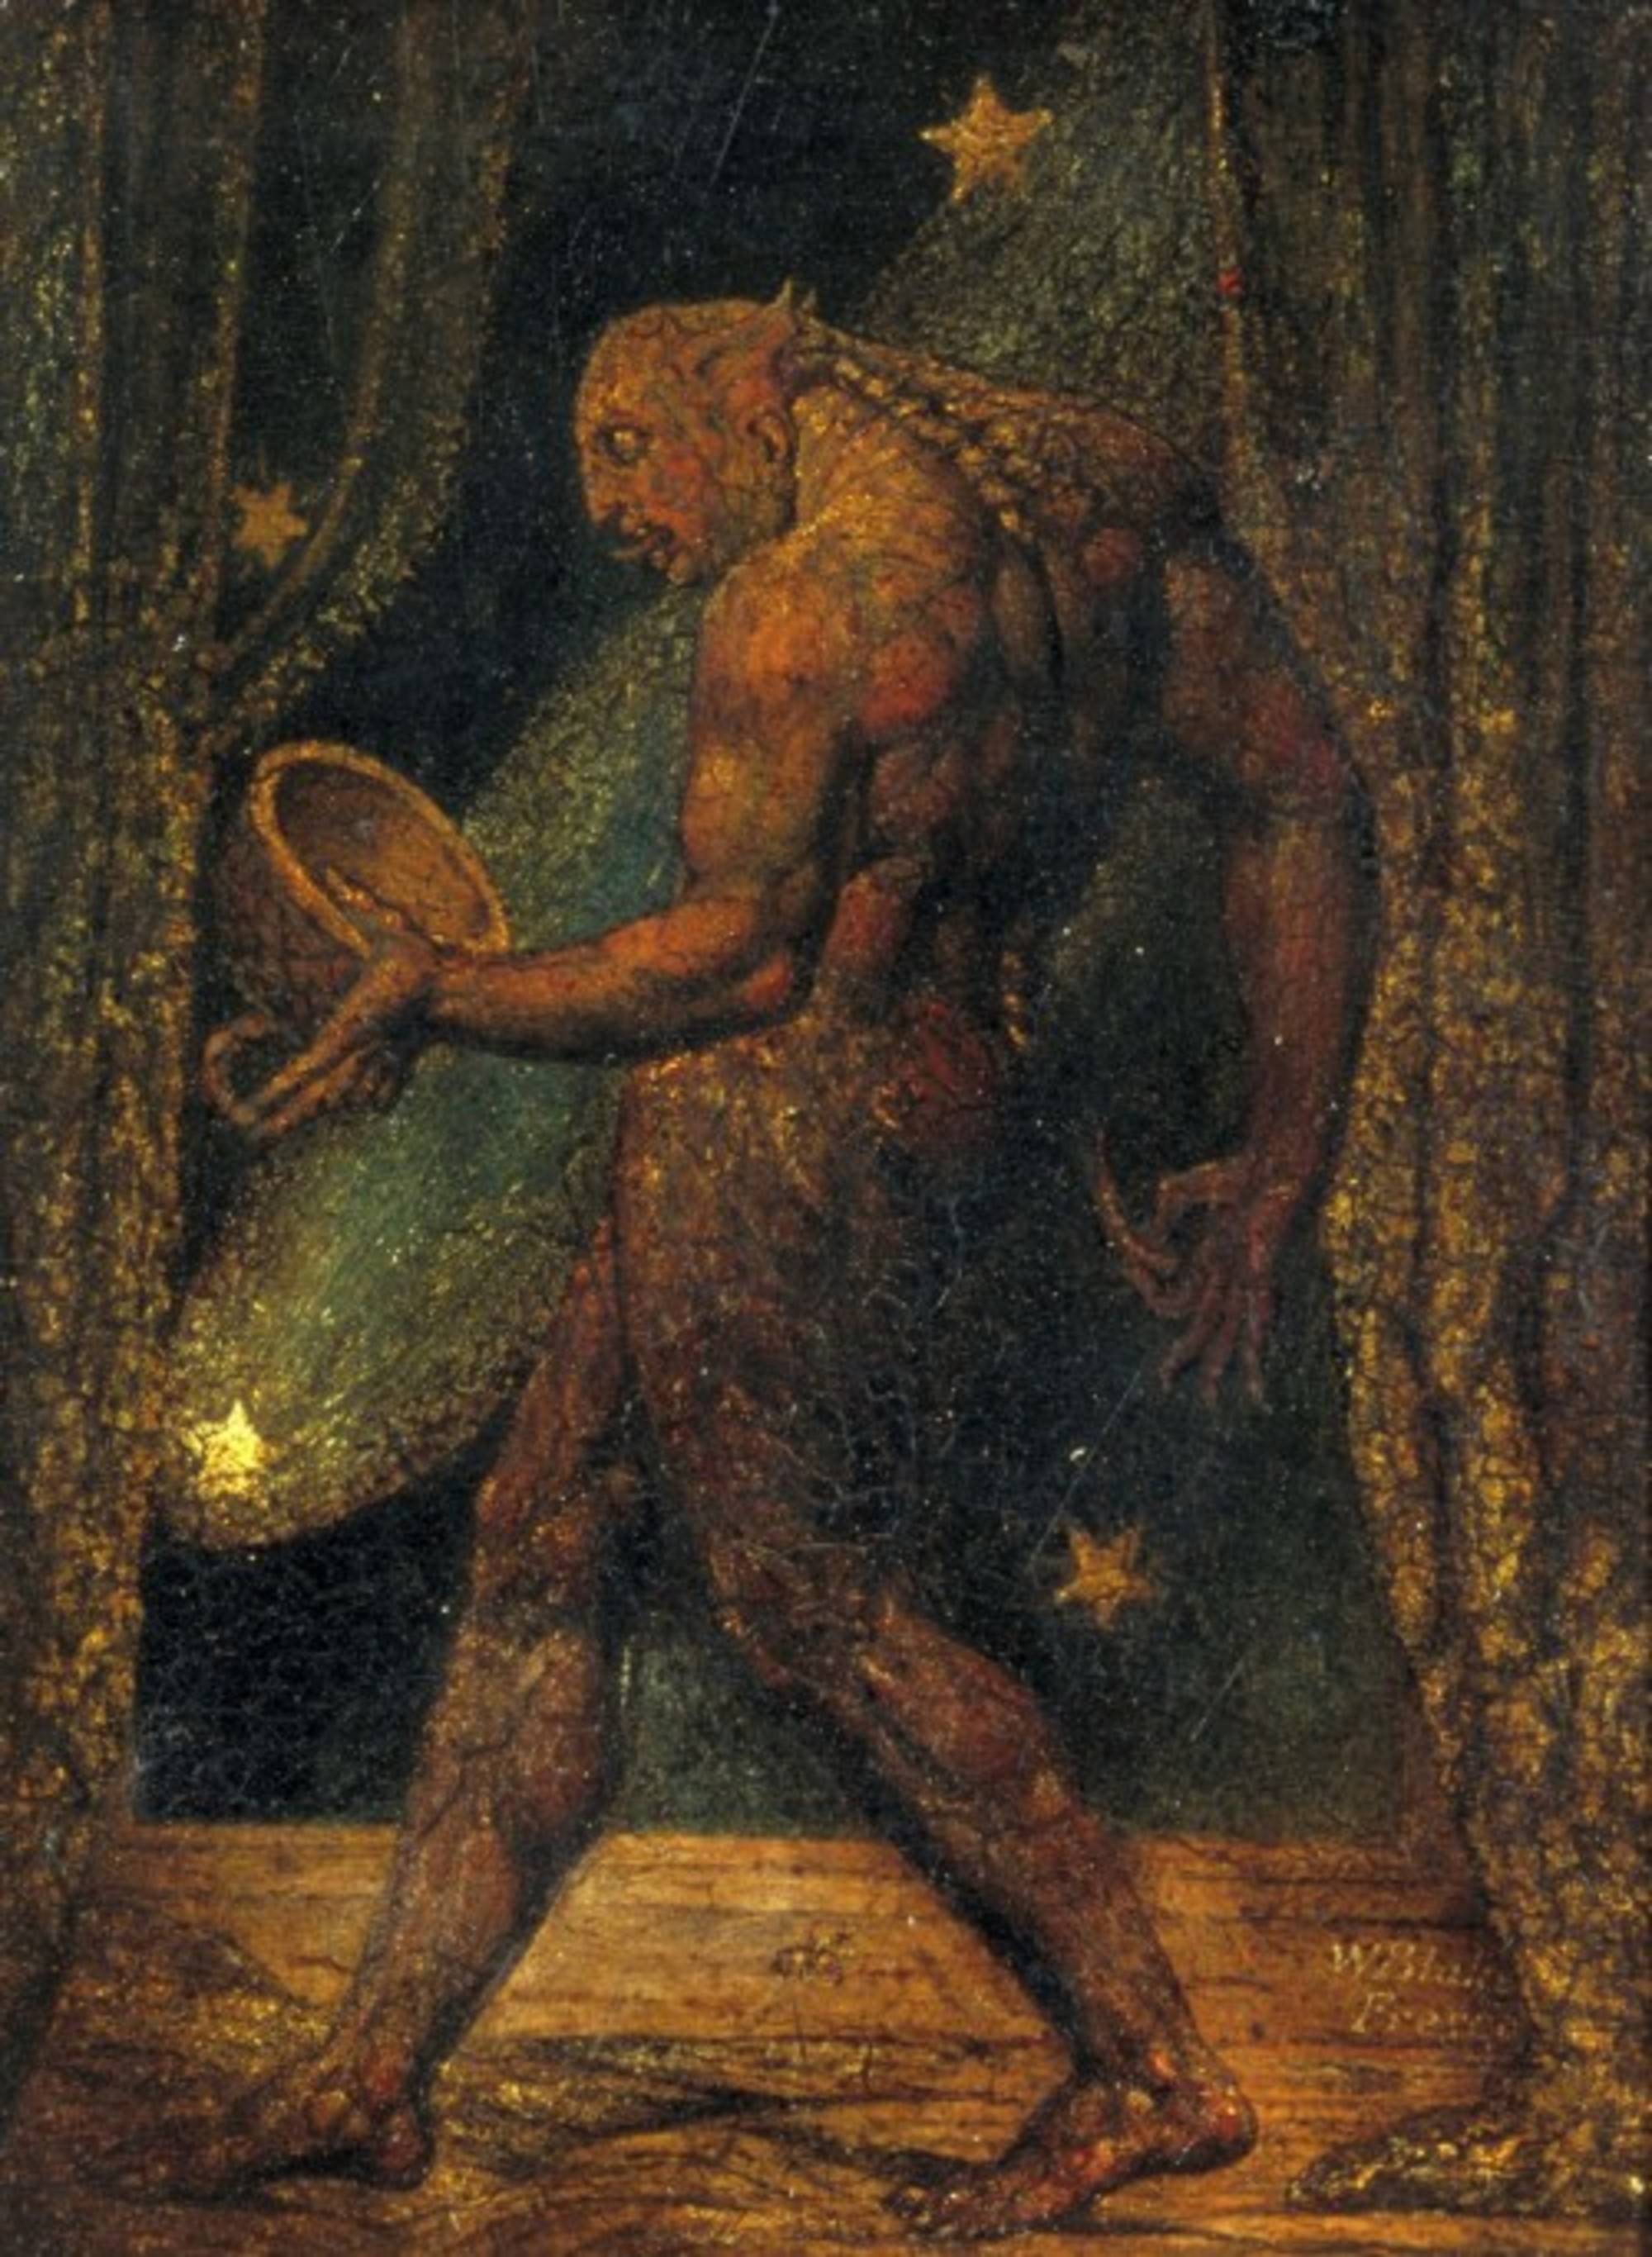 William-Blake---The-Ghost-of-a-Flea-Tate-Britain.jpg